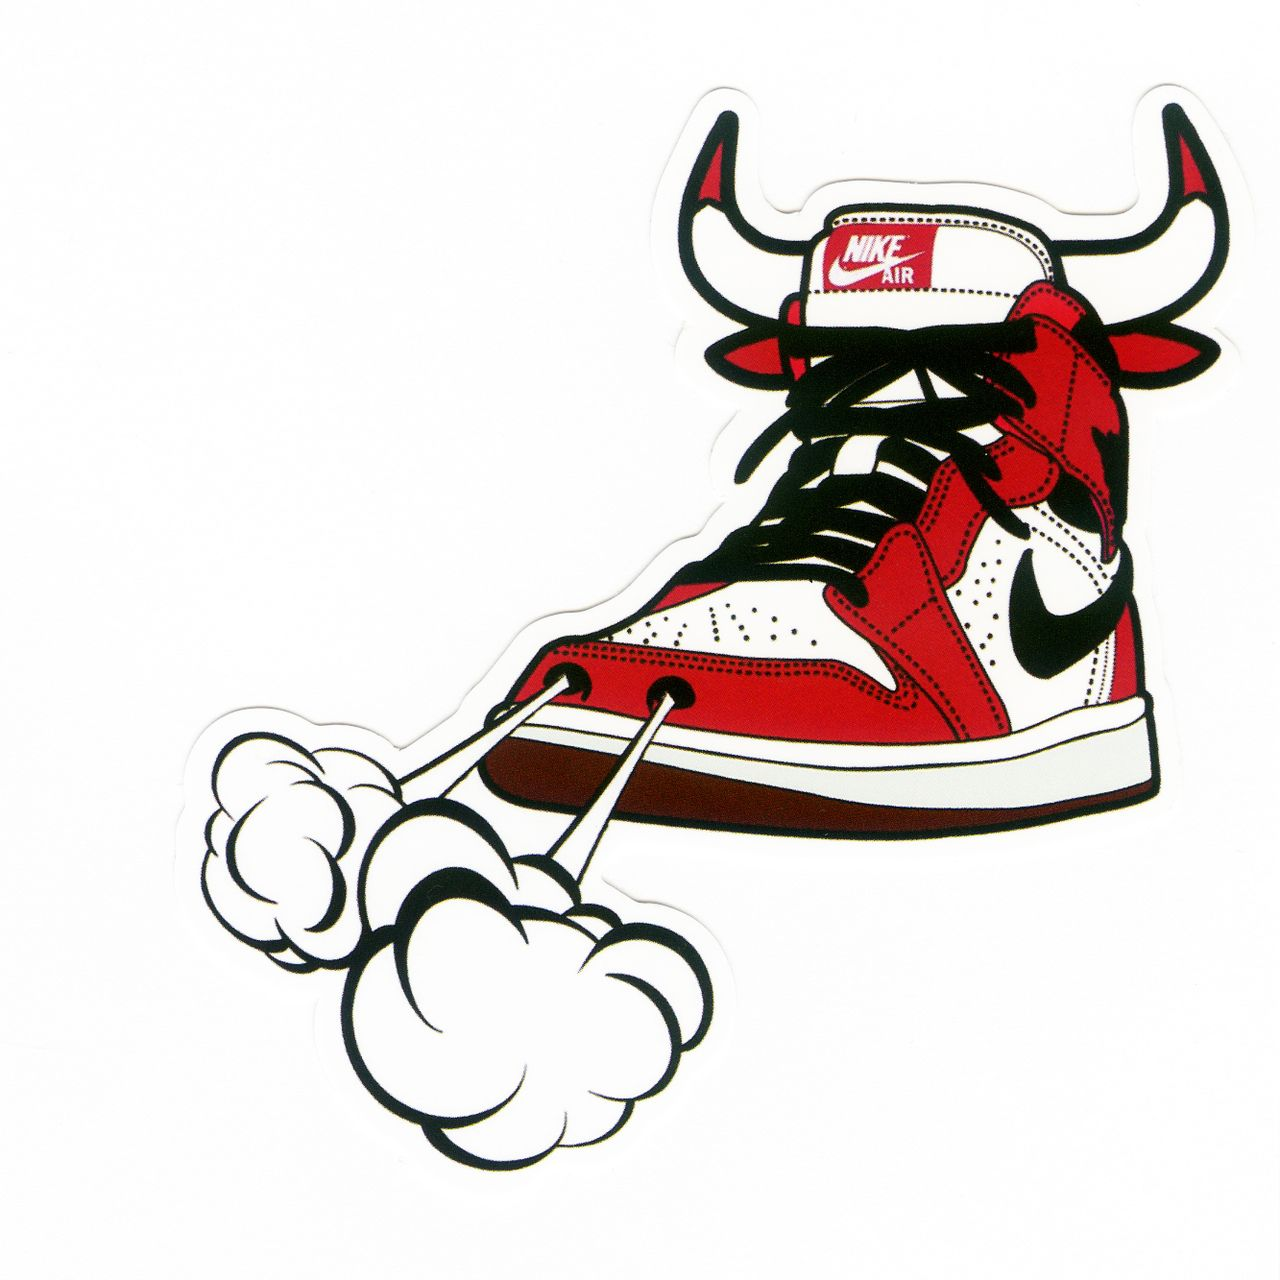 #1092 Michael Jordan 1 Sneakers NIKE AIR CHICAGO BULLS , Height 9 cm, decal…